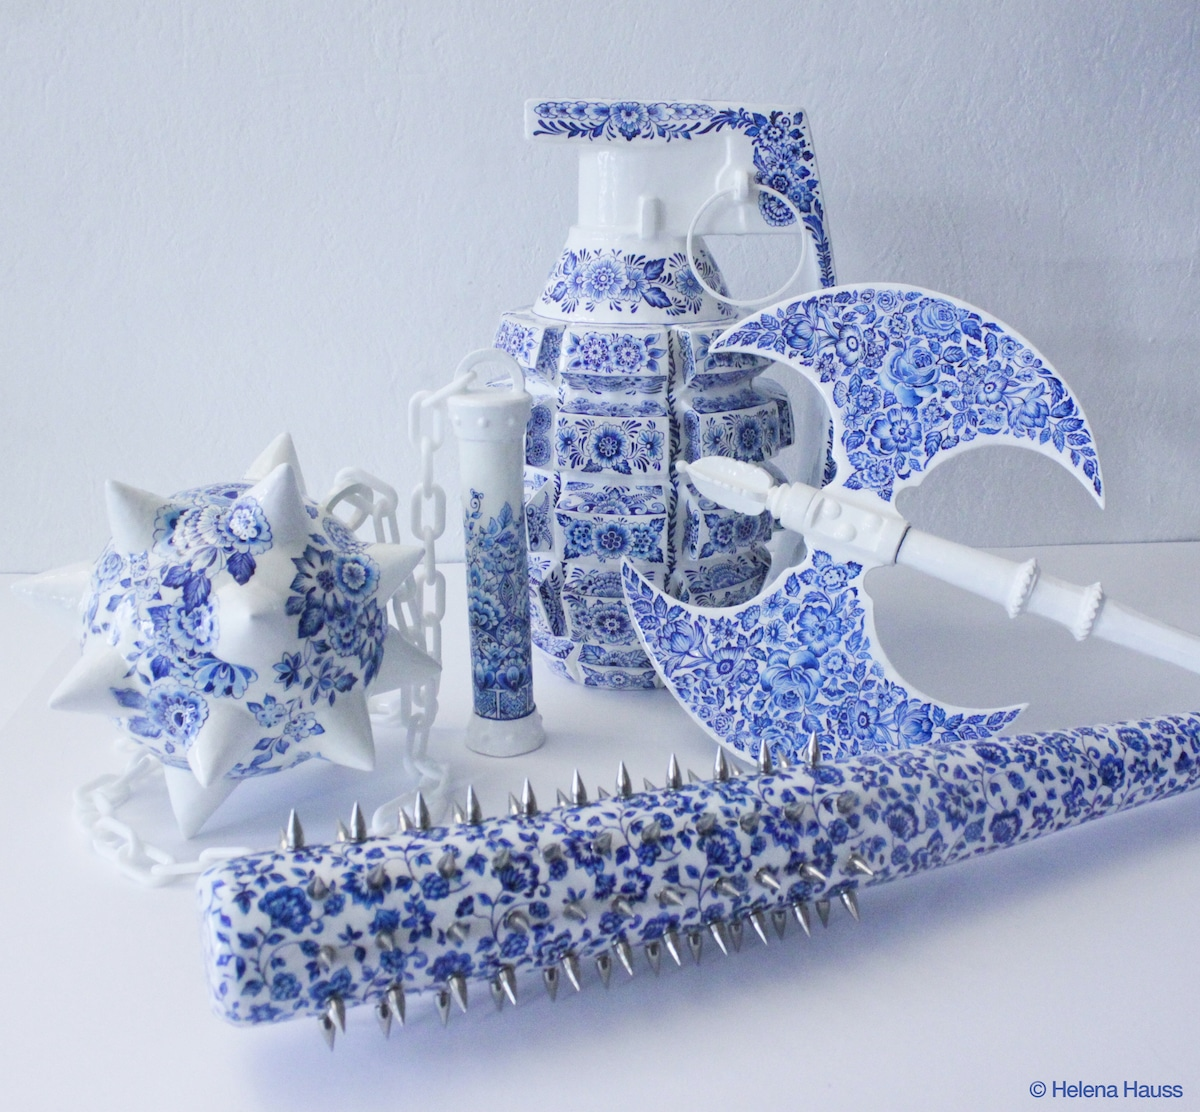 Delftware Porcelain Weapons by Helena Hauss